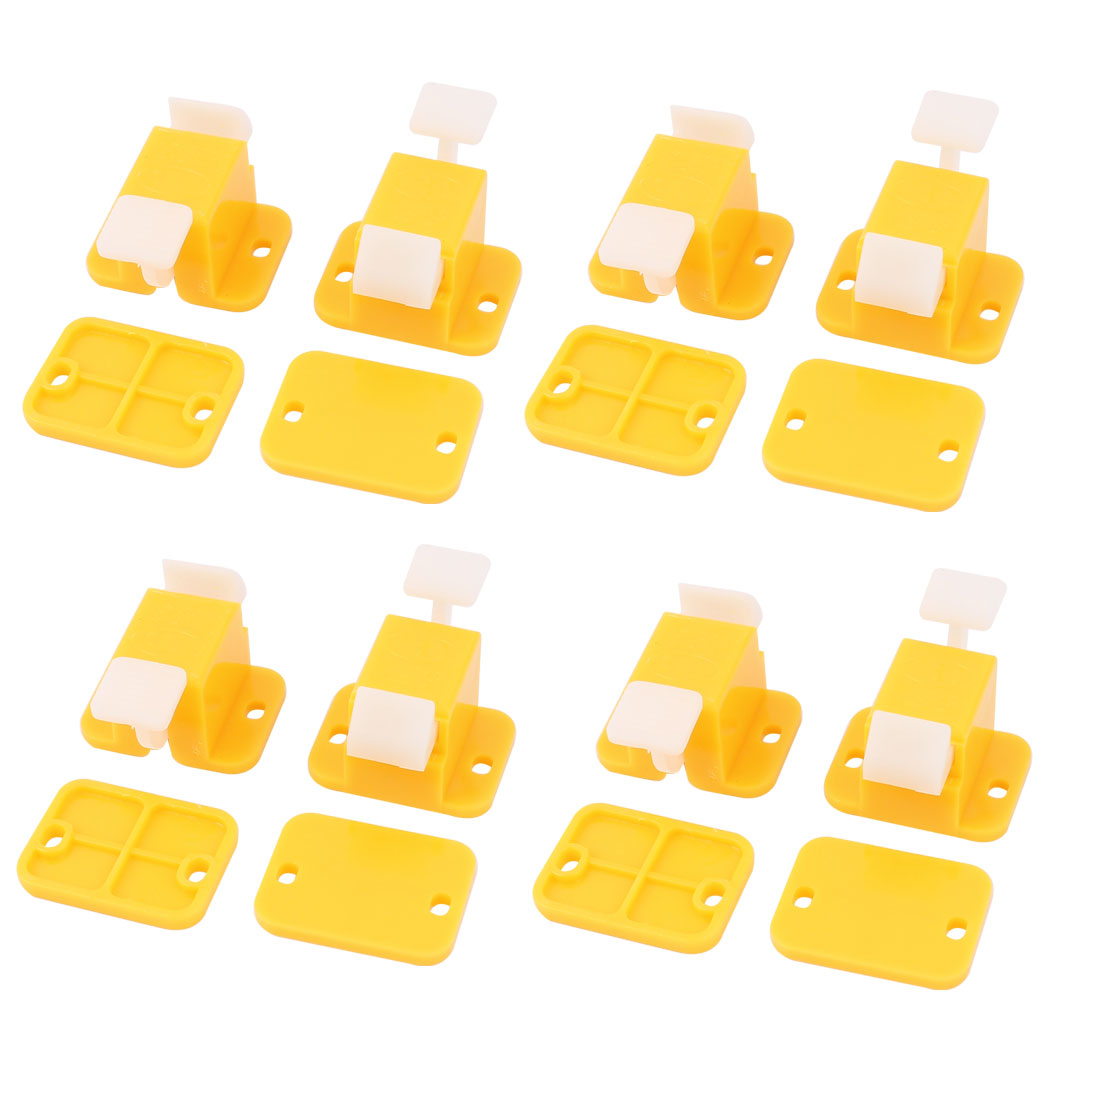 Plastic PCB Board DIY Prototype Test Fixture Jig Latches Yellow White 8pcs